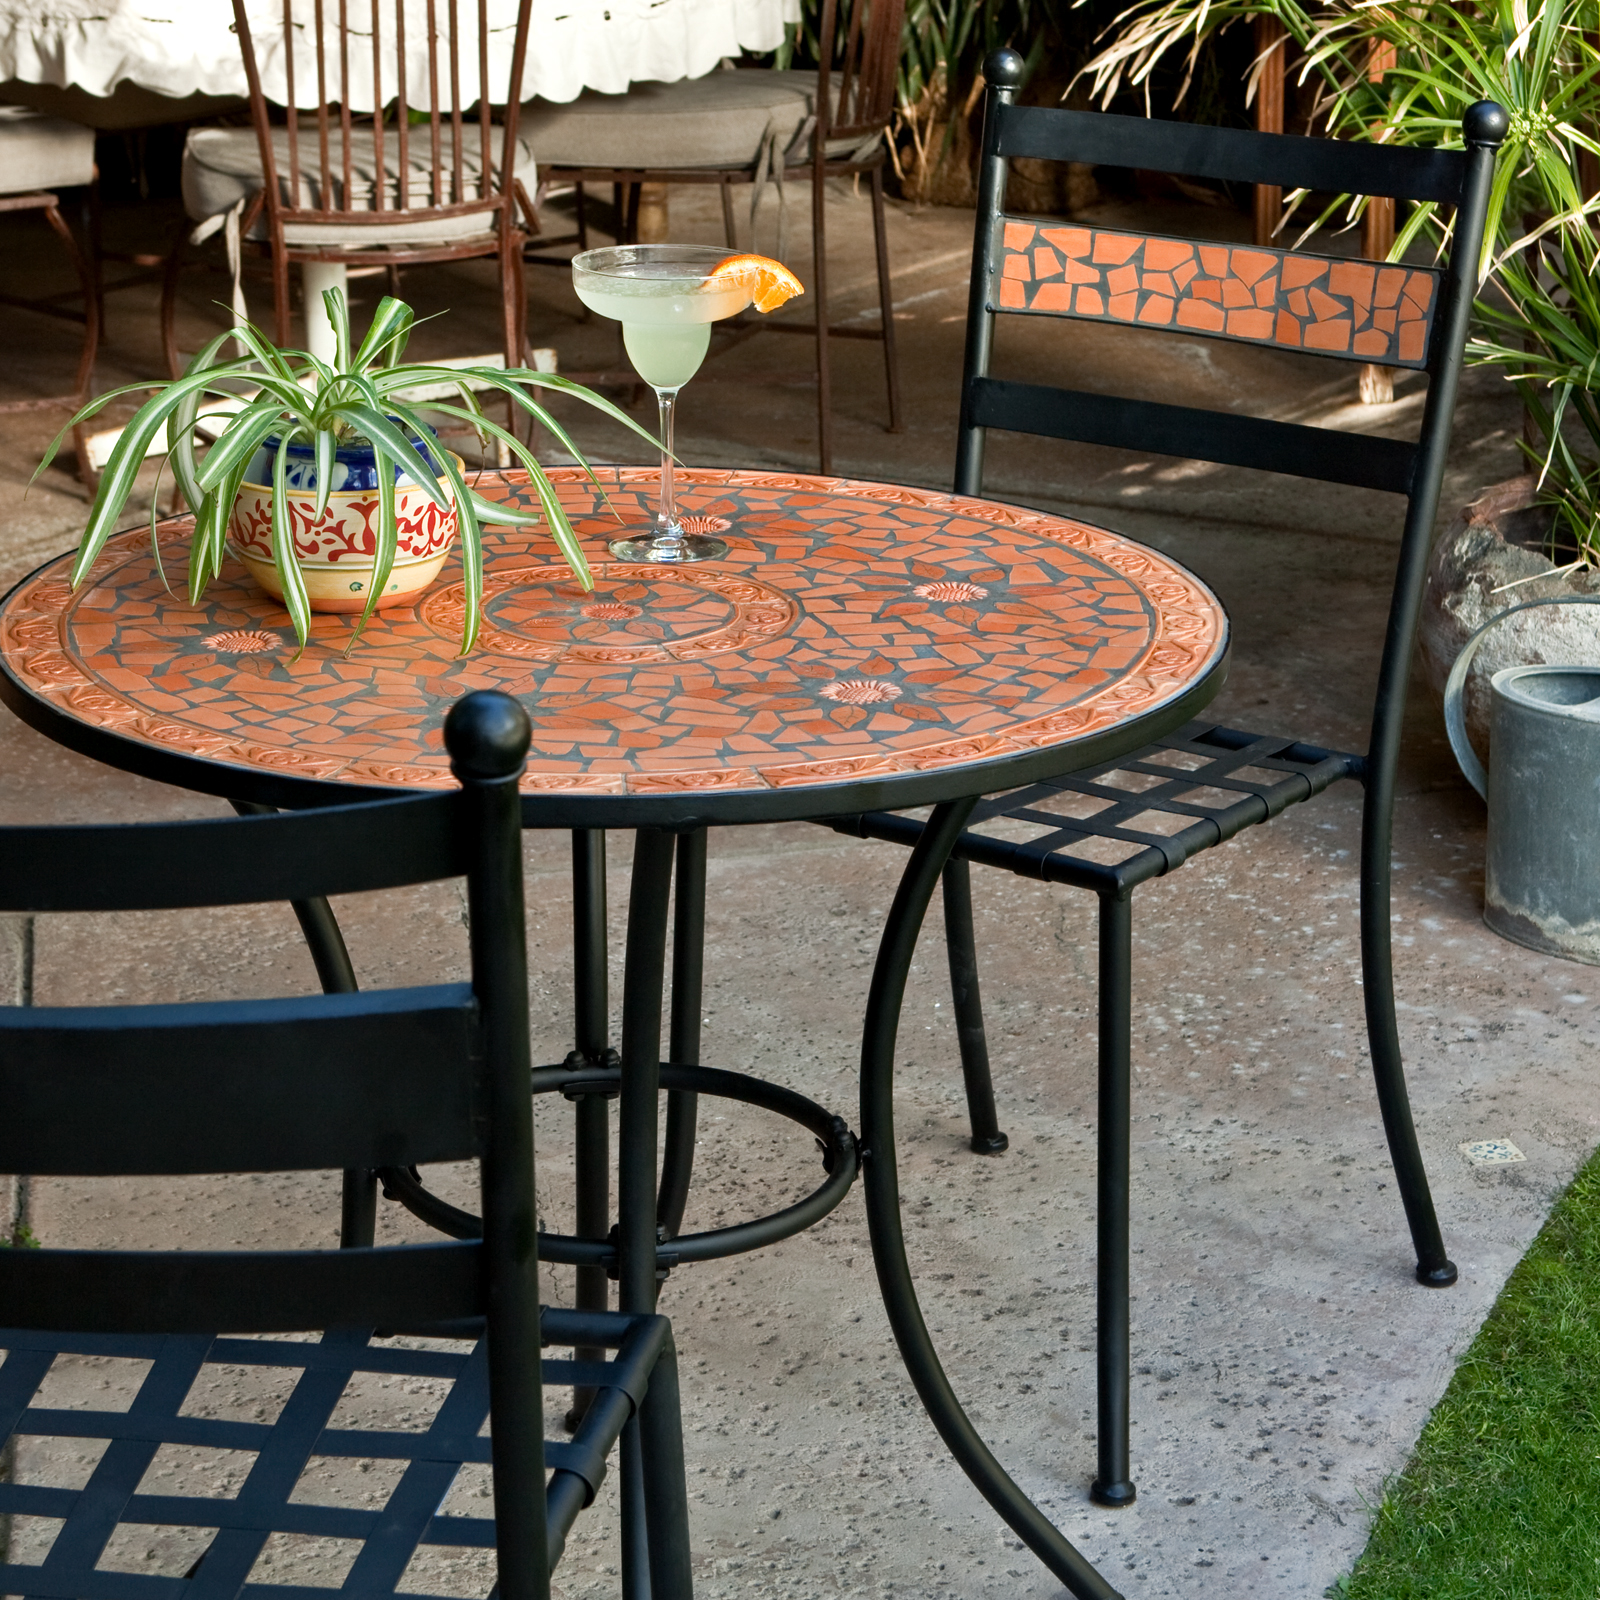 Coral Coast Terra Cotta Mosaic Bistro Set - Outdoor Bistro ... on Outdoor Living Iron Mosaic id=63076